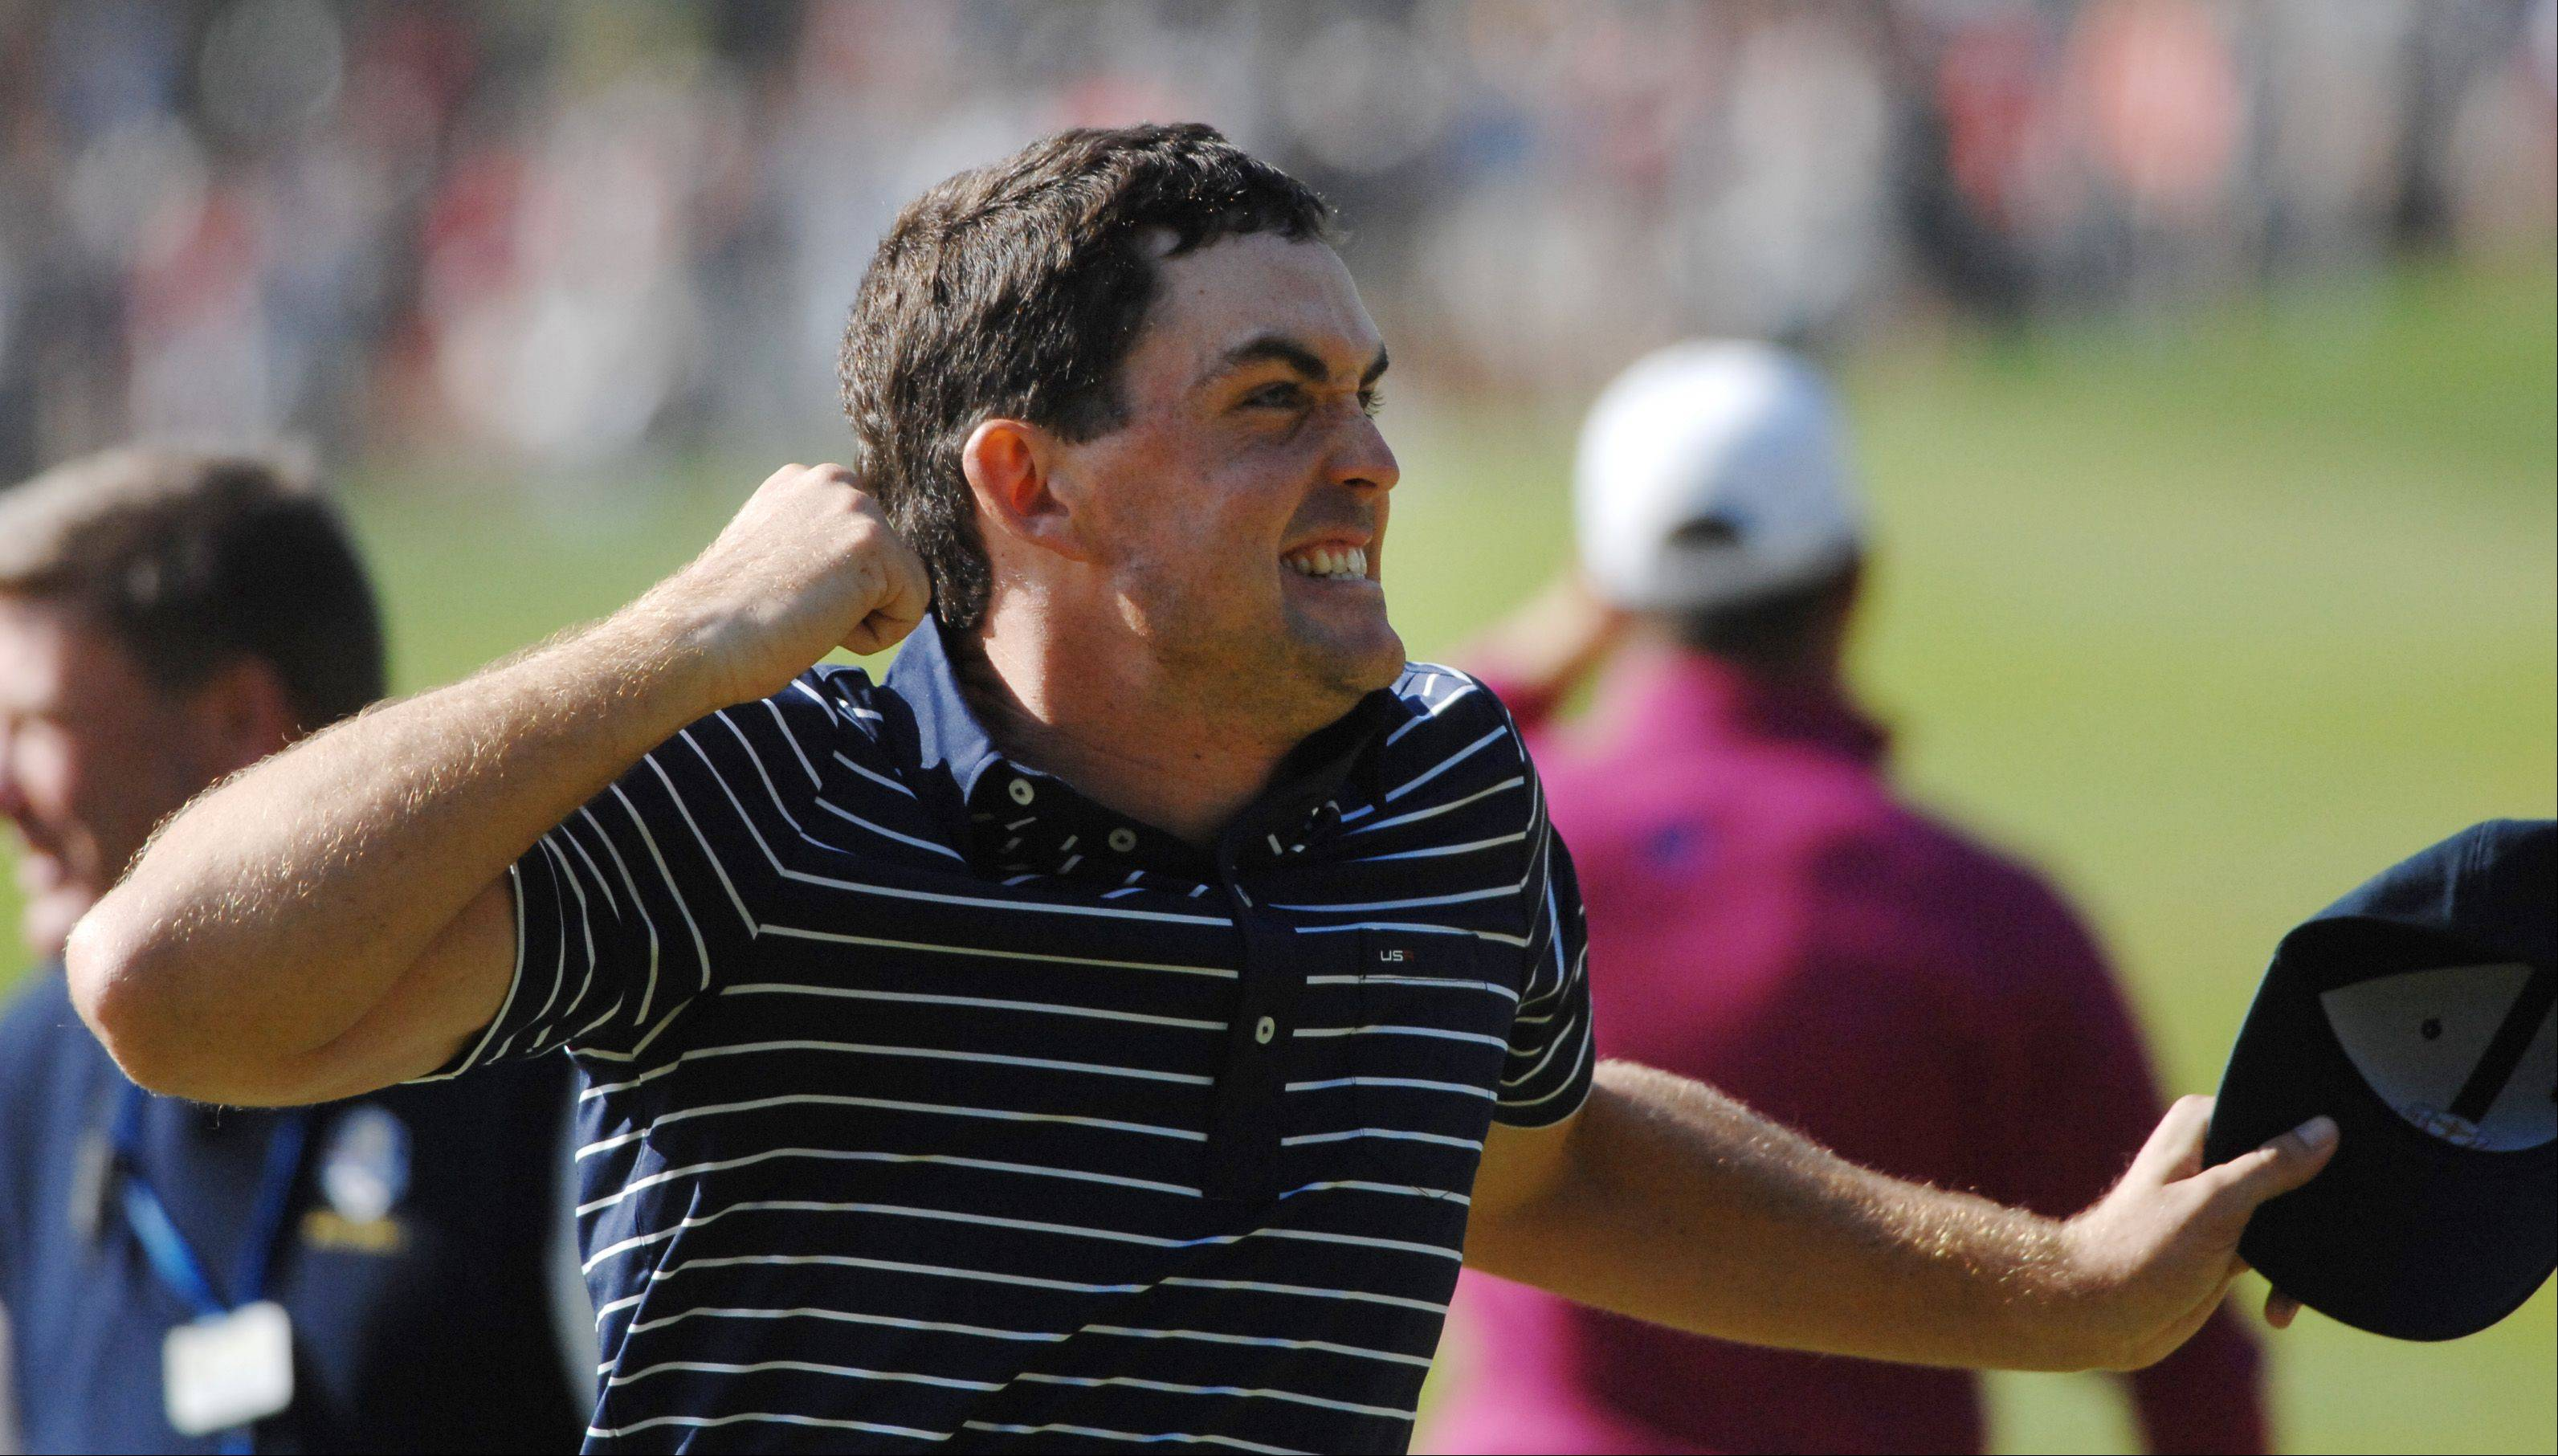 Images: Saturday at the Ryder Cup